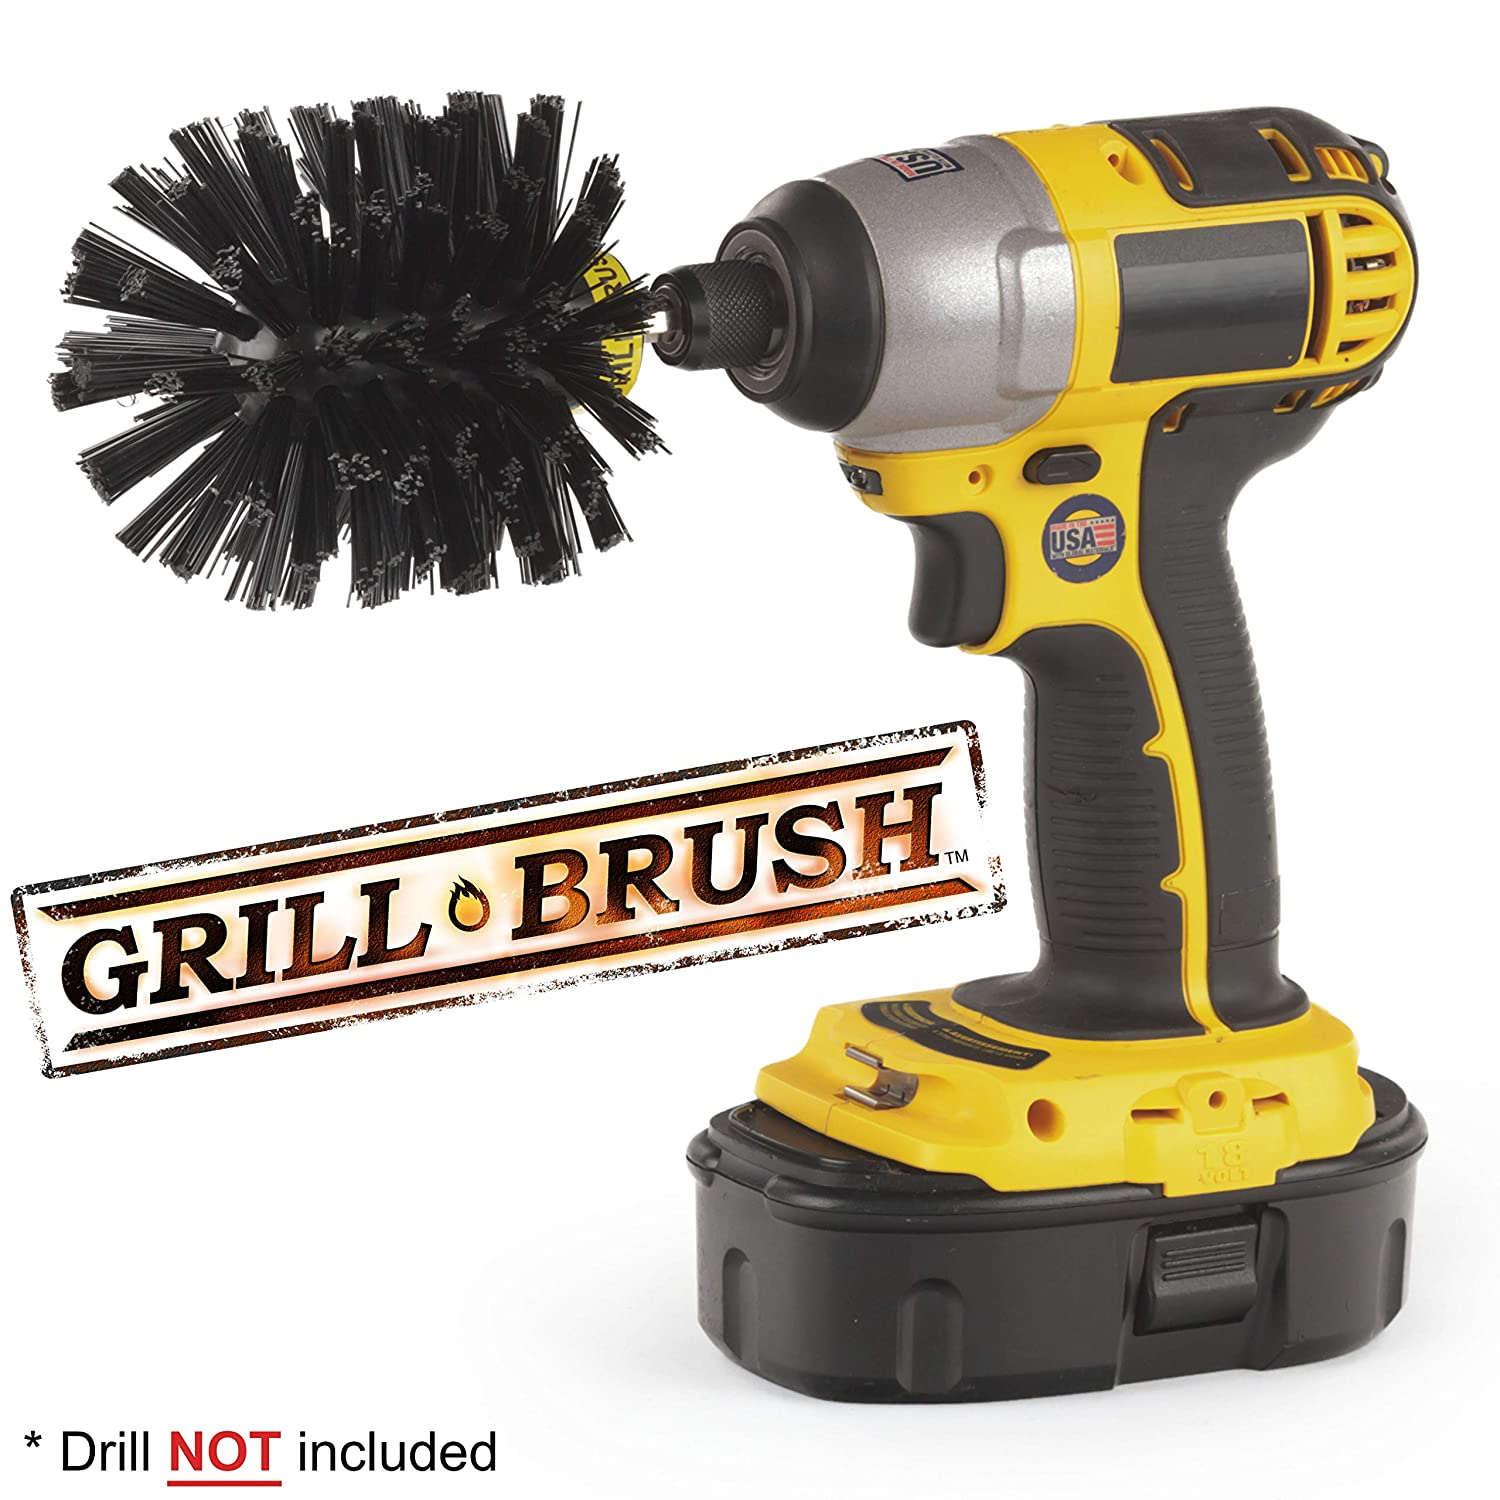 BBQ Grill Accessories - The Grill Brush - Grill Cleaner - Barbeque Grill - Charcoal Grill - Charbroil Grill - Electric Smoker - Smokers and Grills - Grill Scraper - Grill Cleaner - BBQ Tools Drillbrush